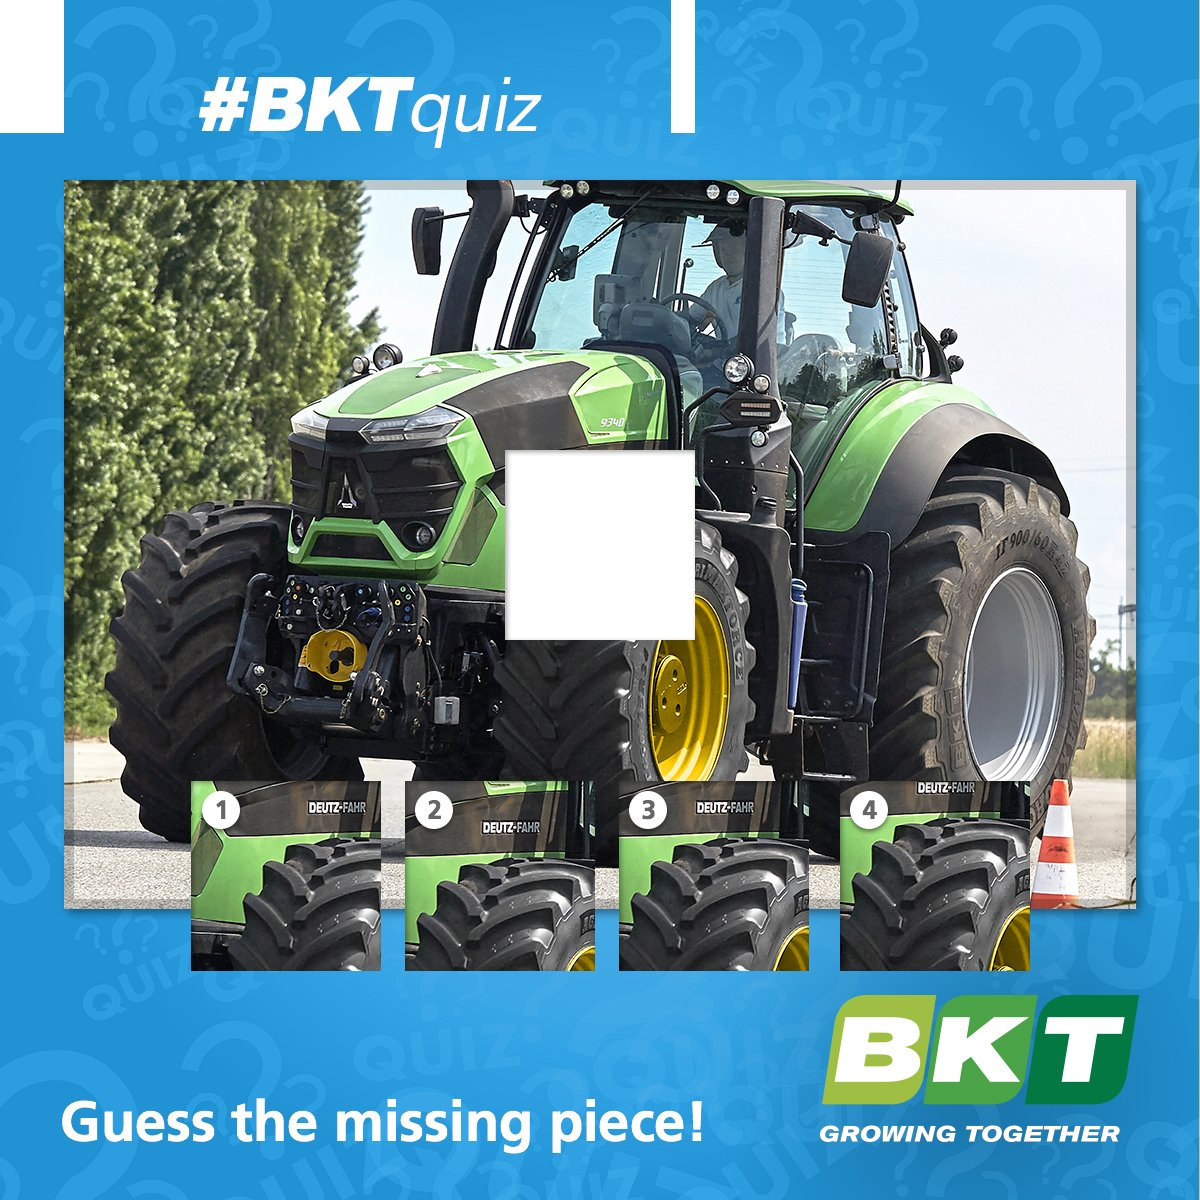 Choose the right piece to complete this picture! #BKTquiz #quiz #puzzles https://t.co/moNoRVXH18